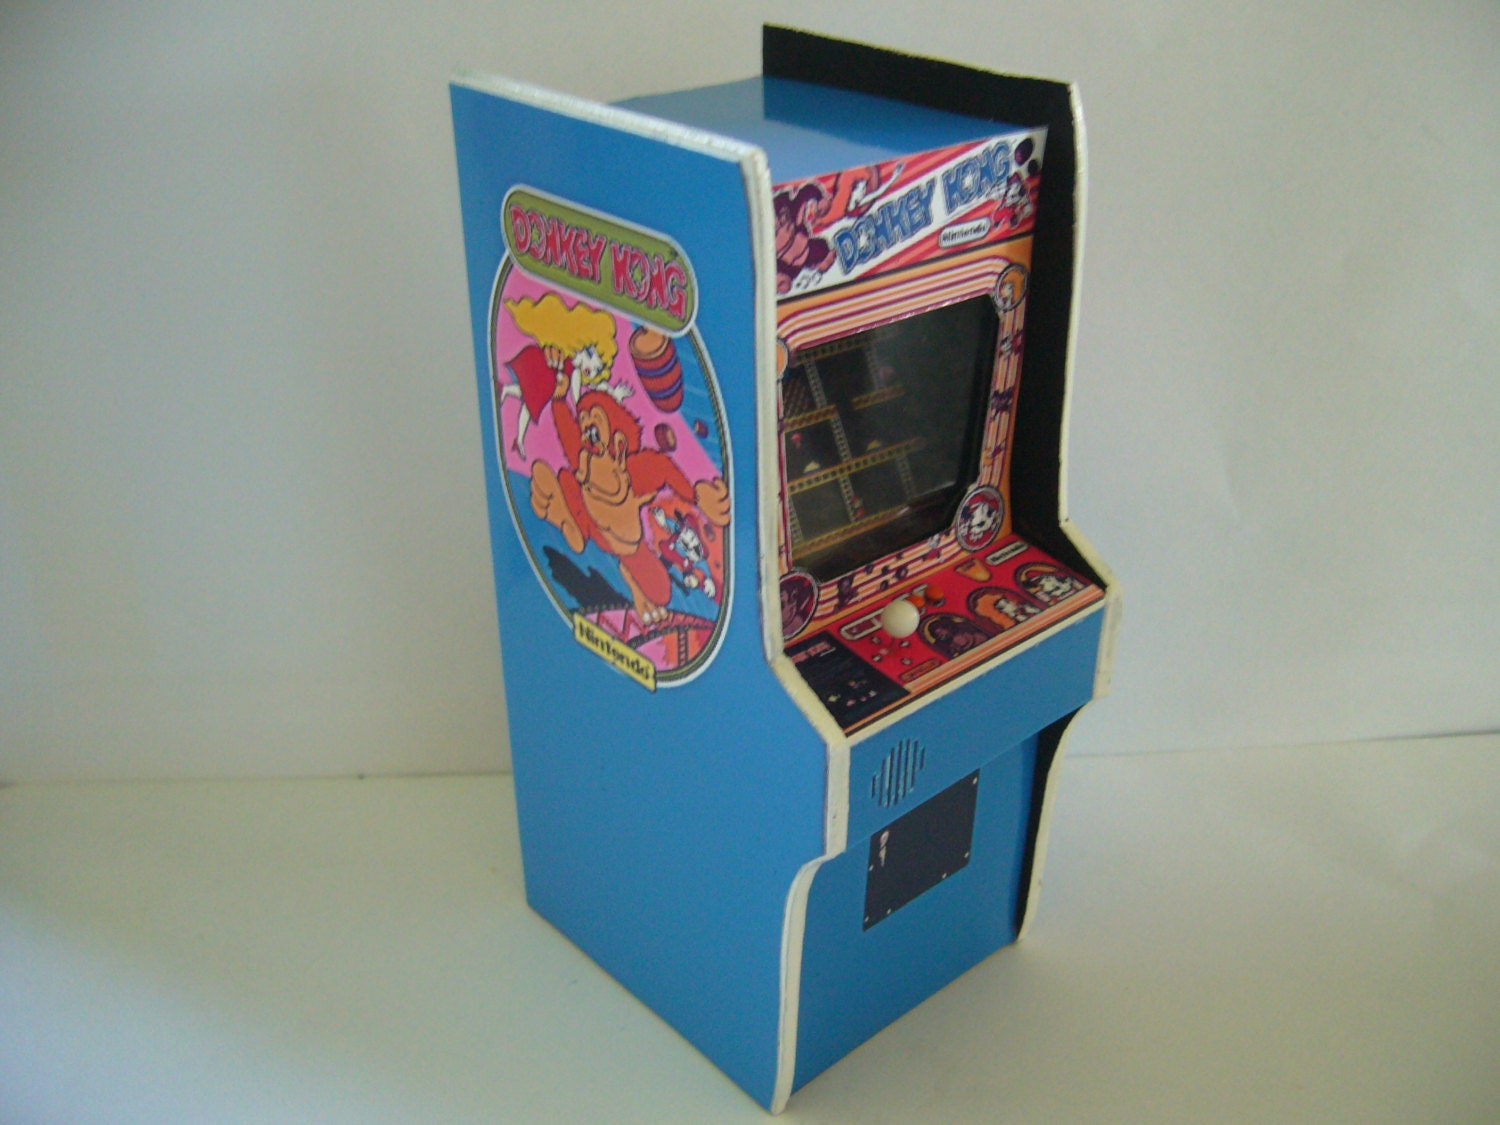 Donkey Kong 1 6th Scale Miniature Arcade Machine Model 12